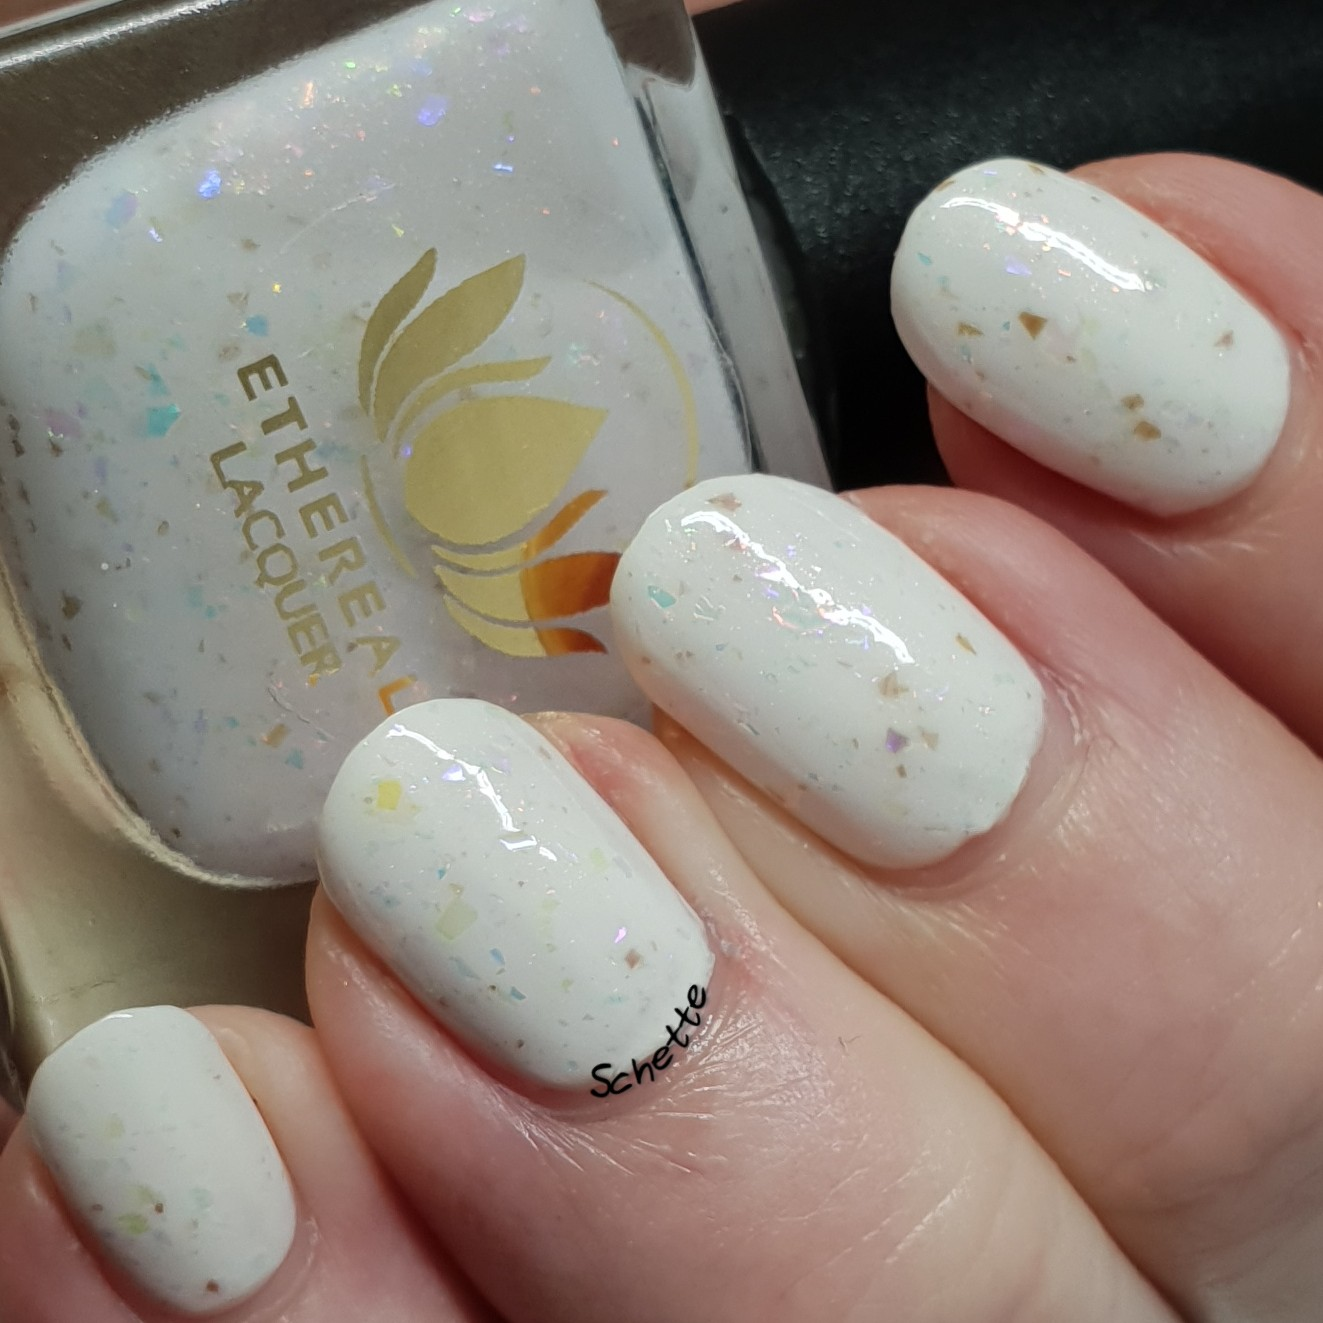 Ethereal Lacquer - Snowflakes at down